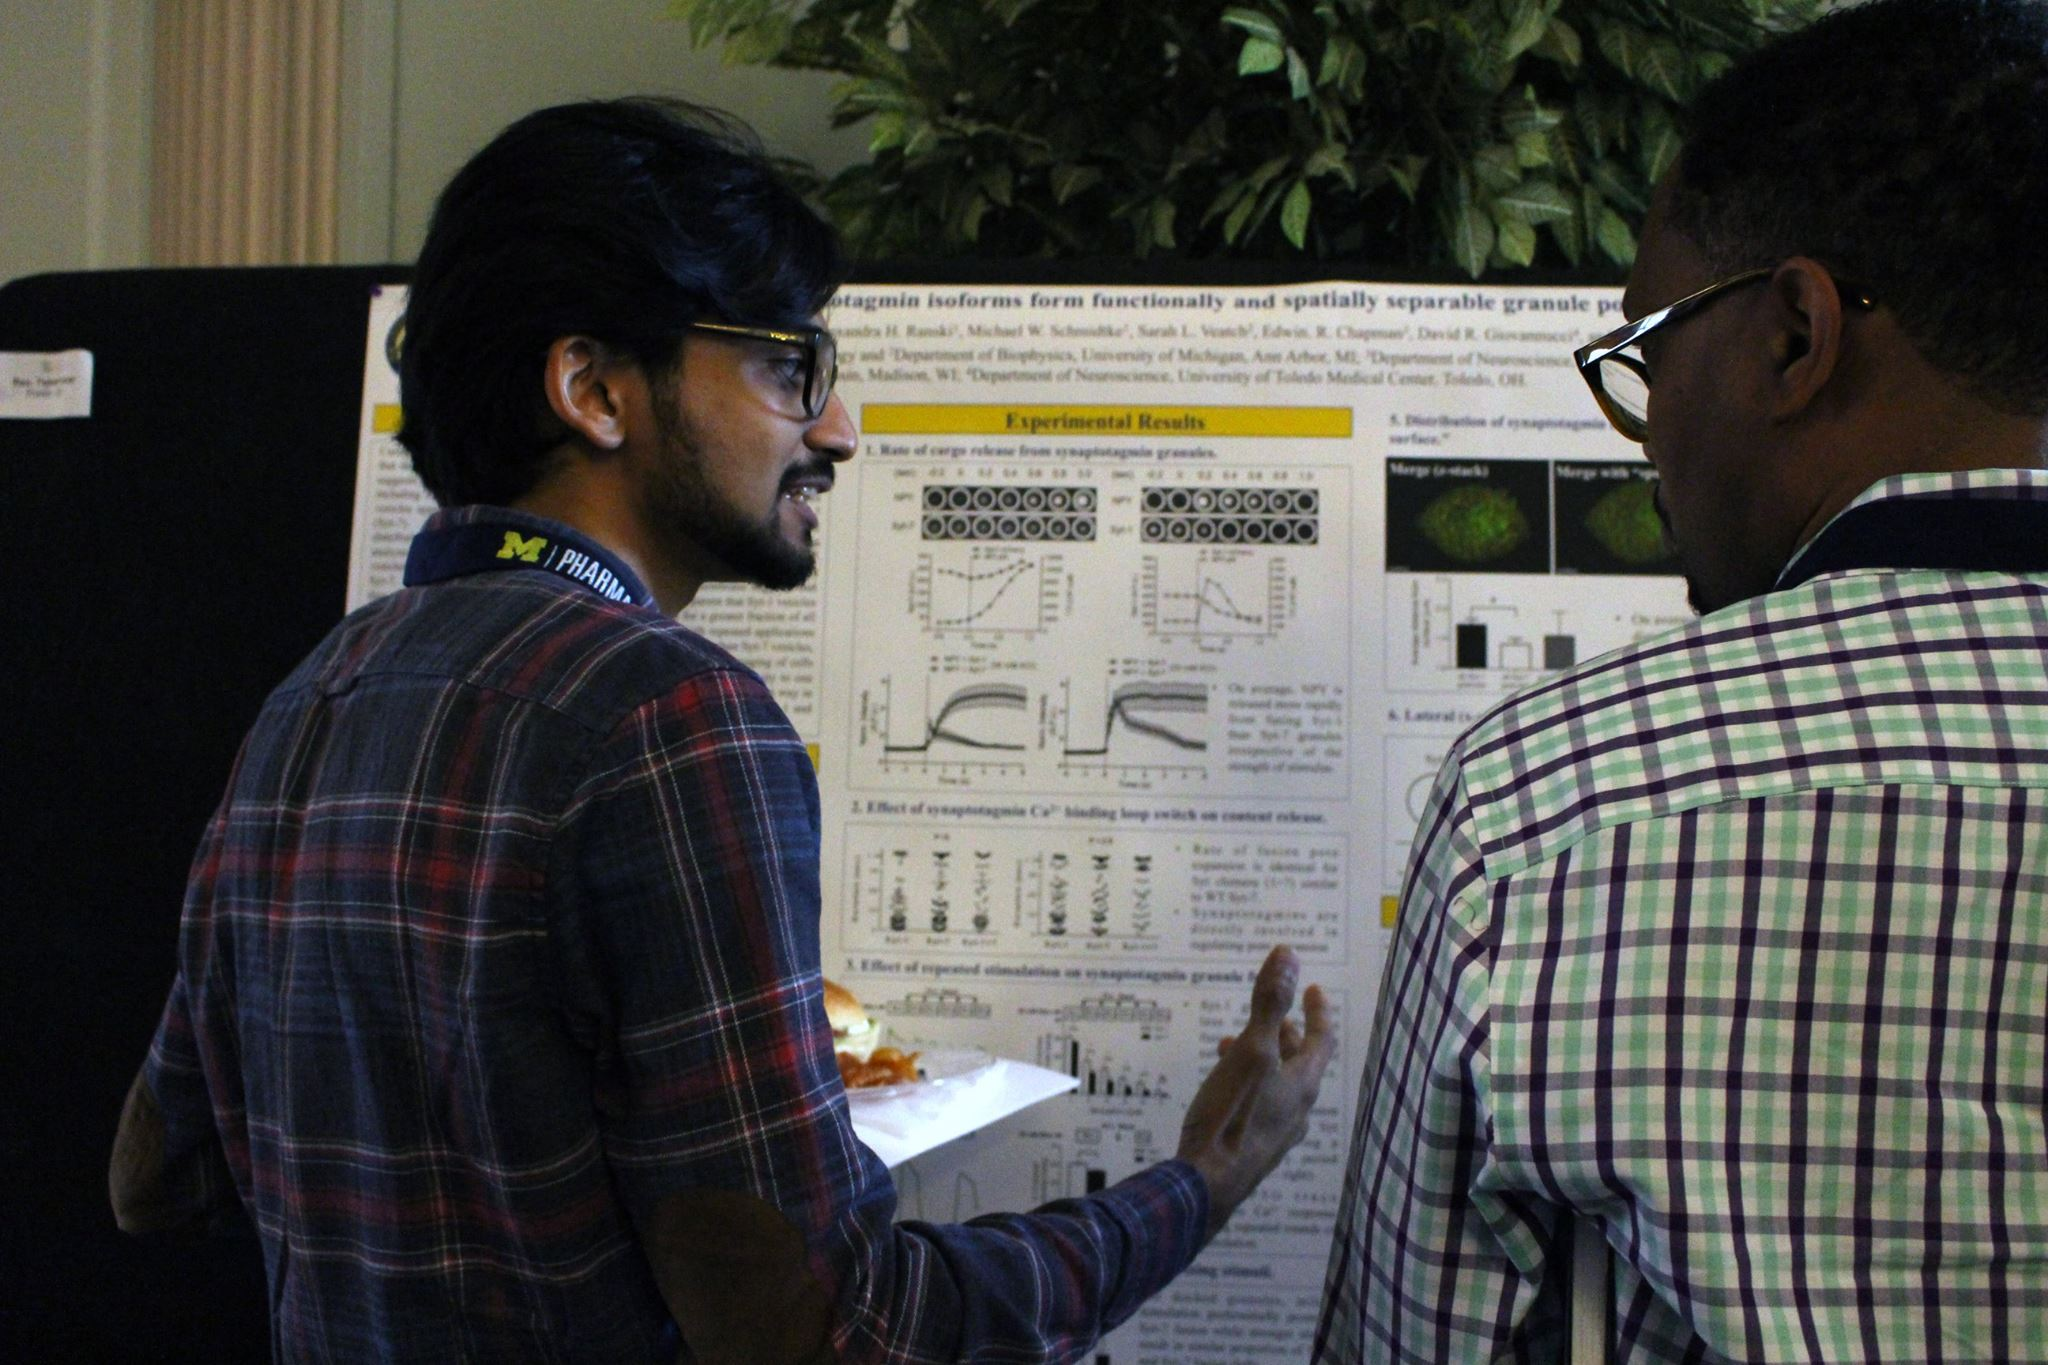 Drs. Tejeshwar Rao (Anantharam Lab) and Kevin Jones discuss research at the department's 125th anniversary